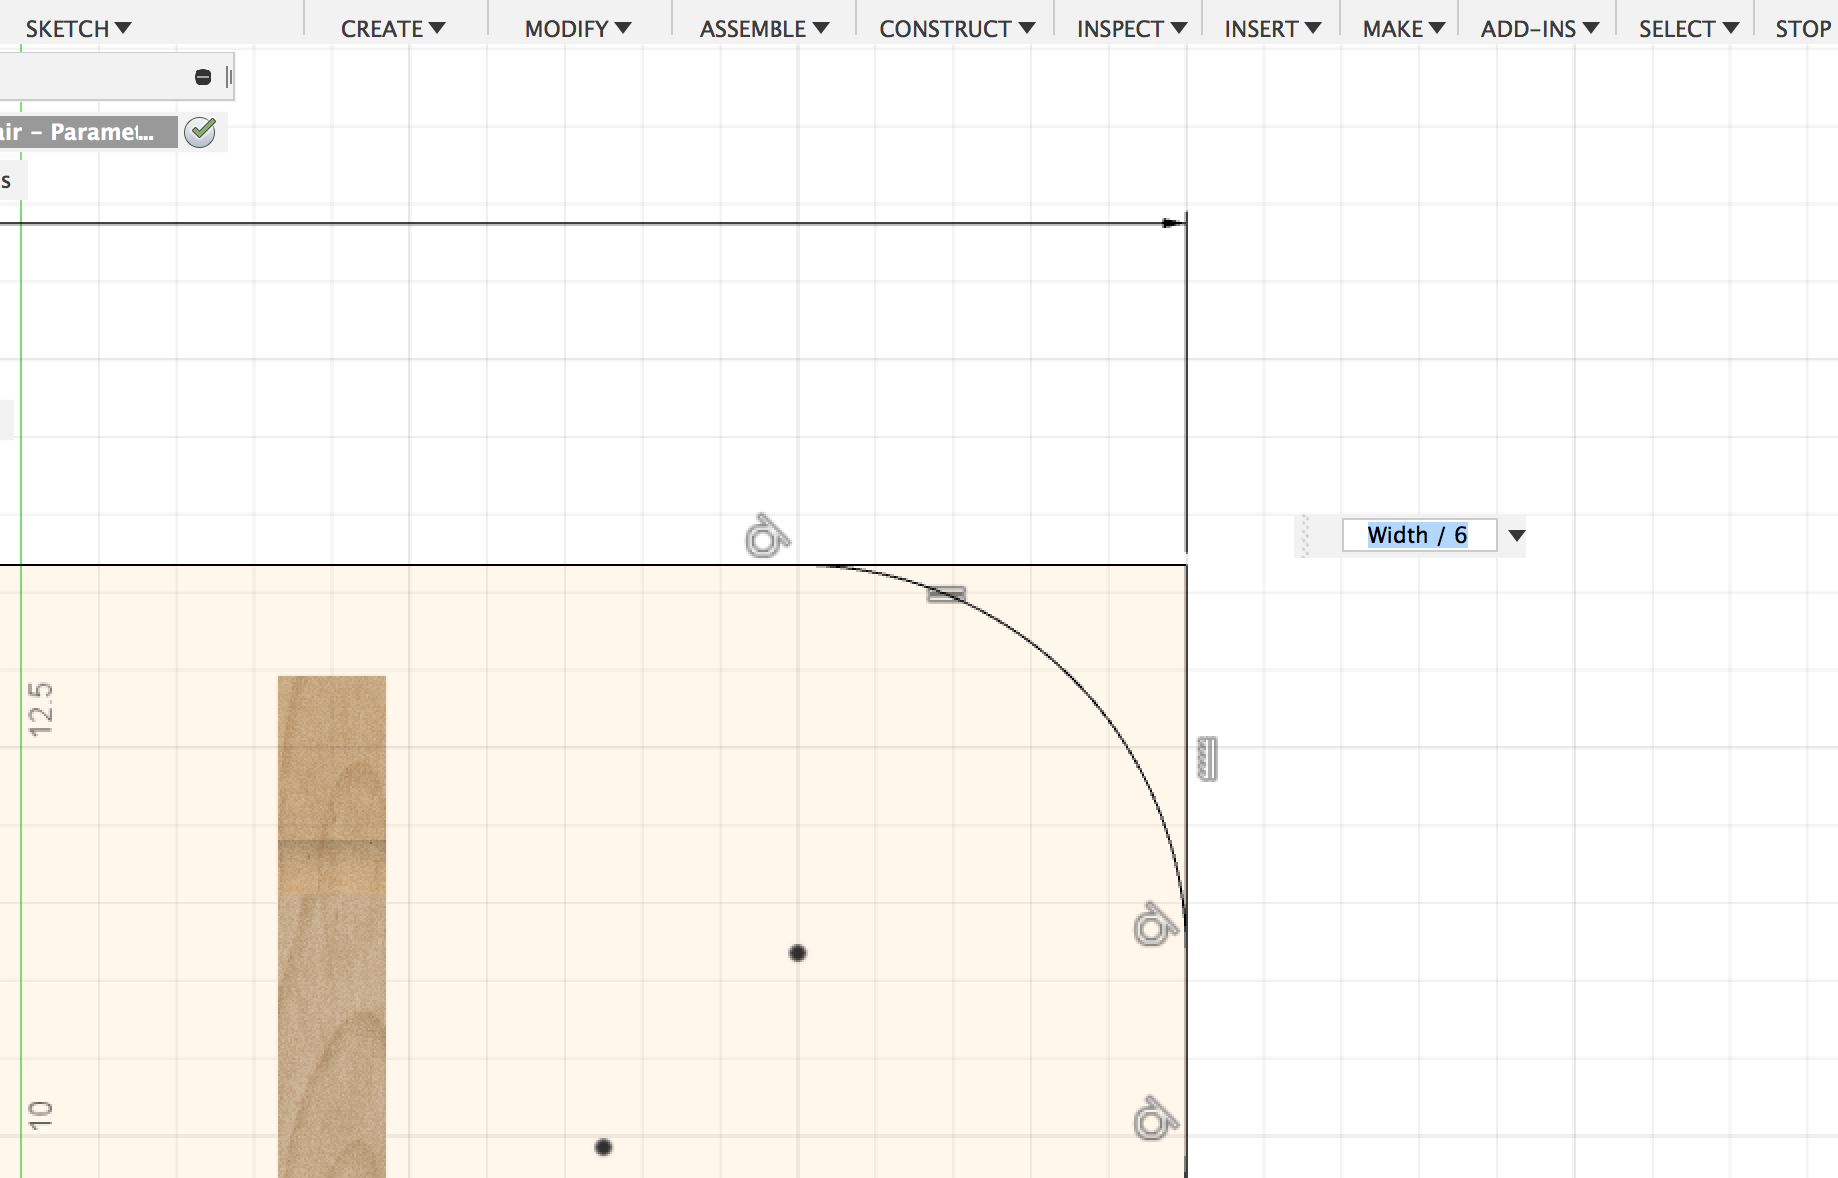 An example of how a parametic dimention is used in Fusion 360